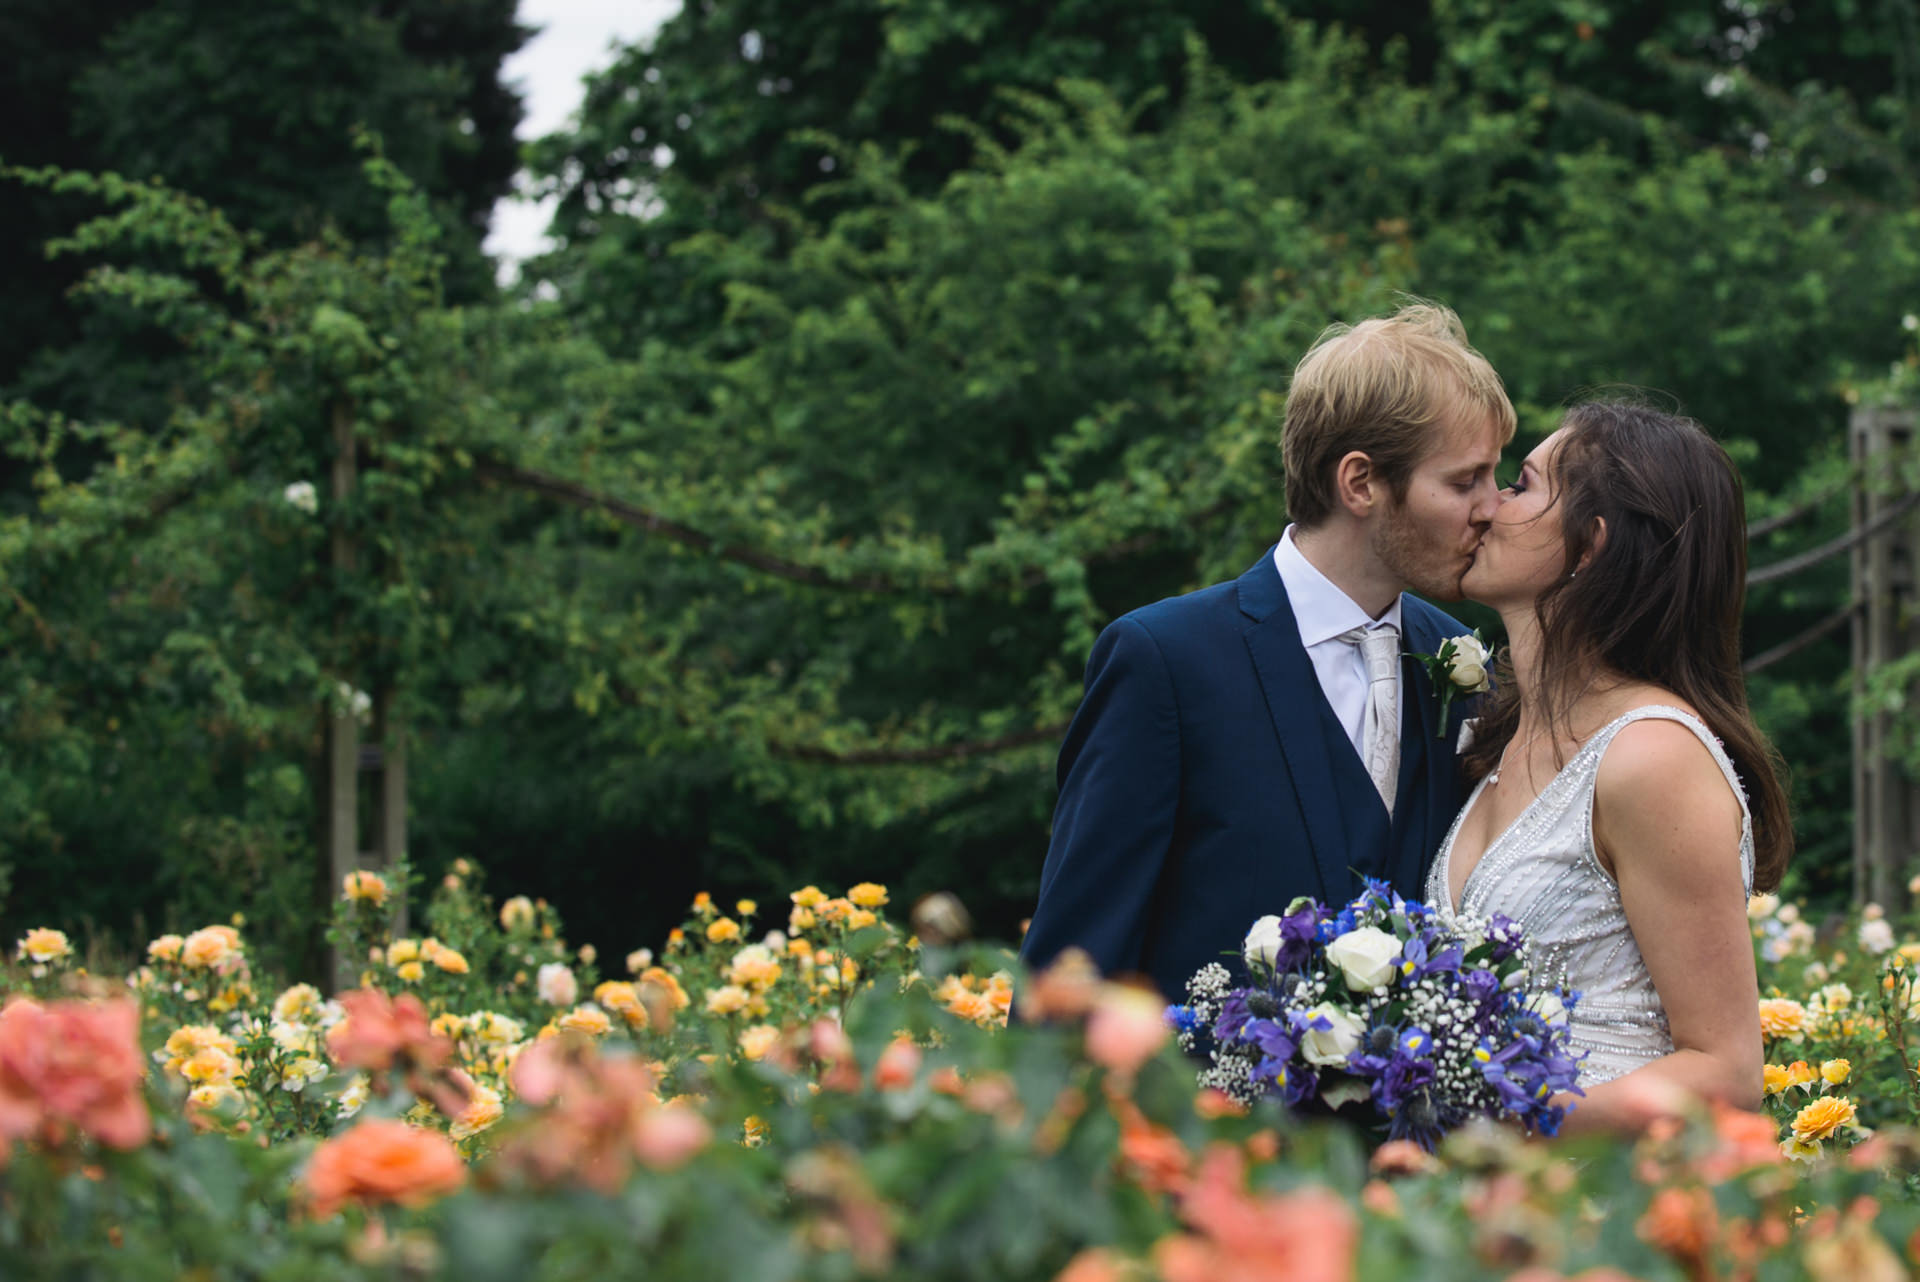 regents park london wedding couple photo